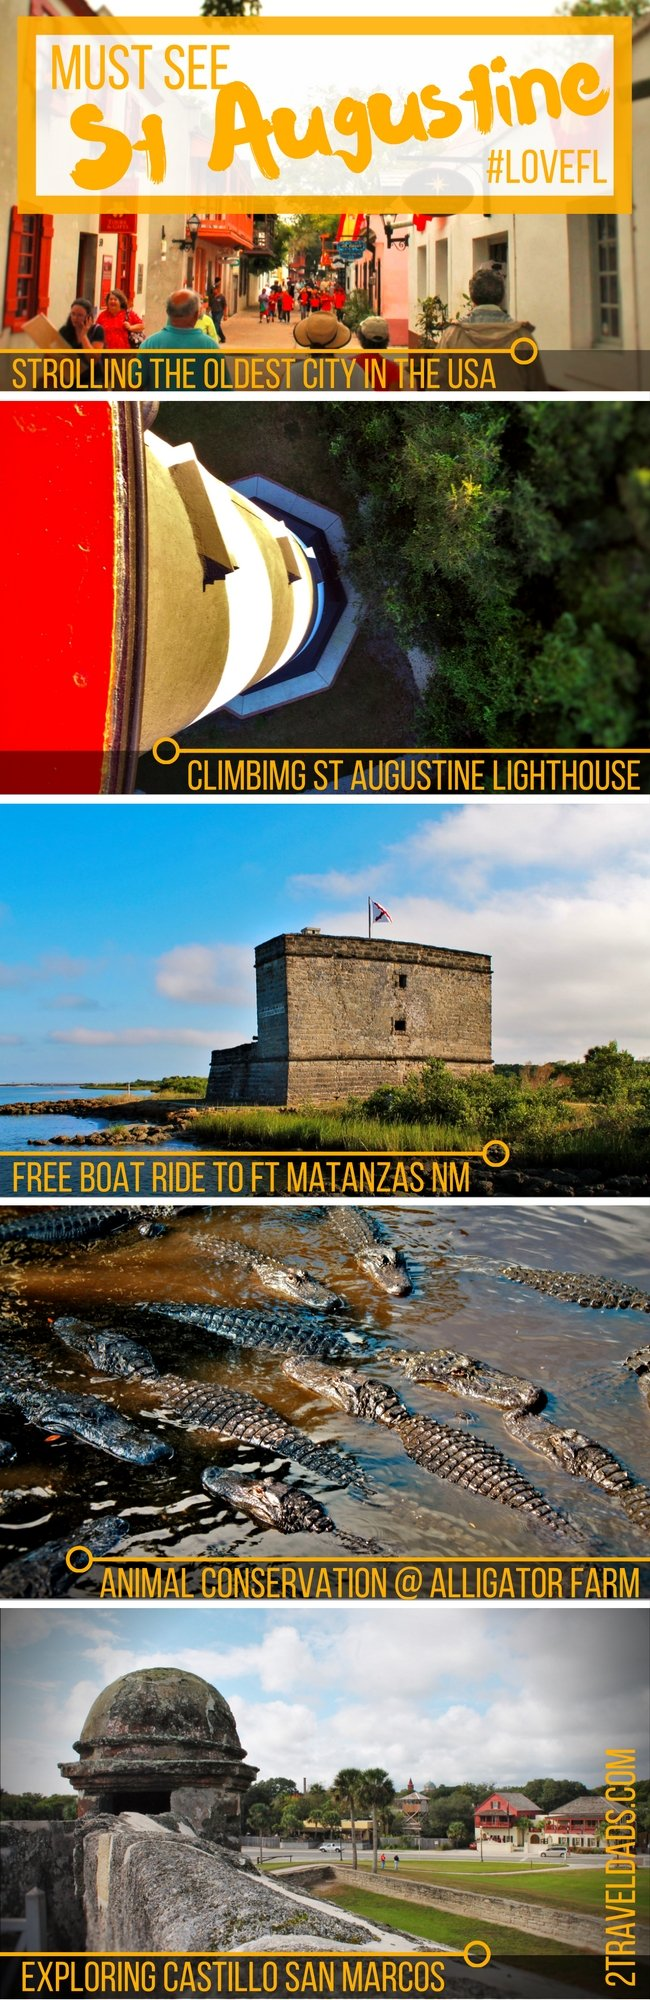 Strolling through historic St Augustine, Florida - from the Spanish fort to the Spanish Quarter, Alligator Farm to the Lighthouse - an ideal family destination